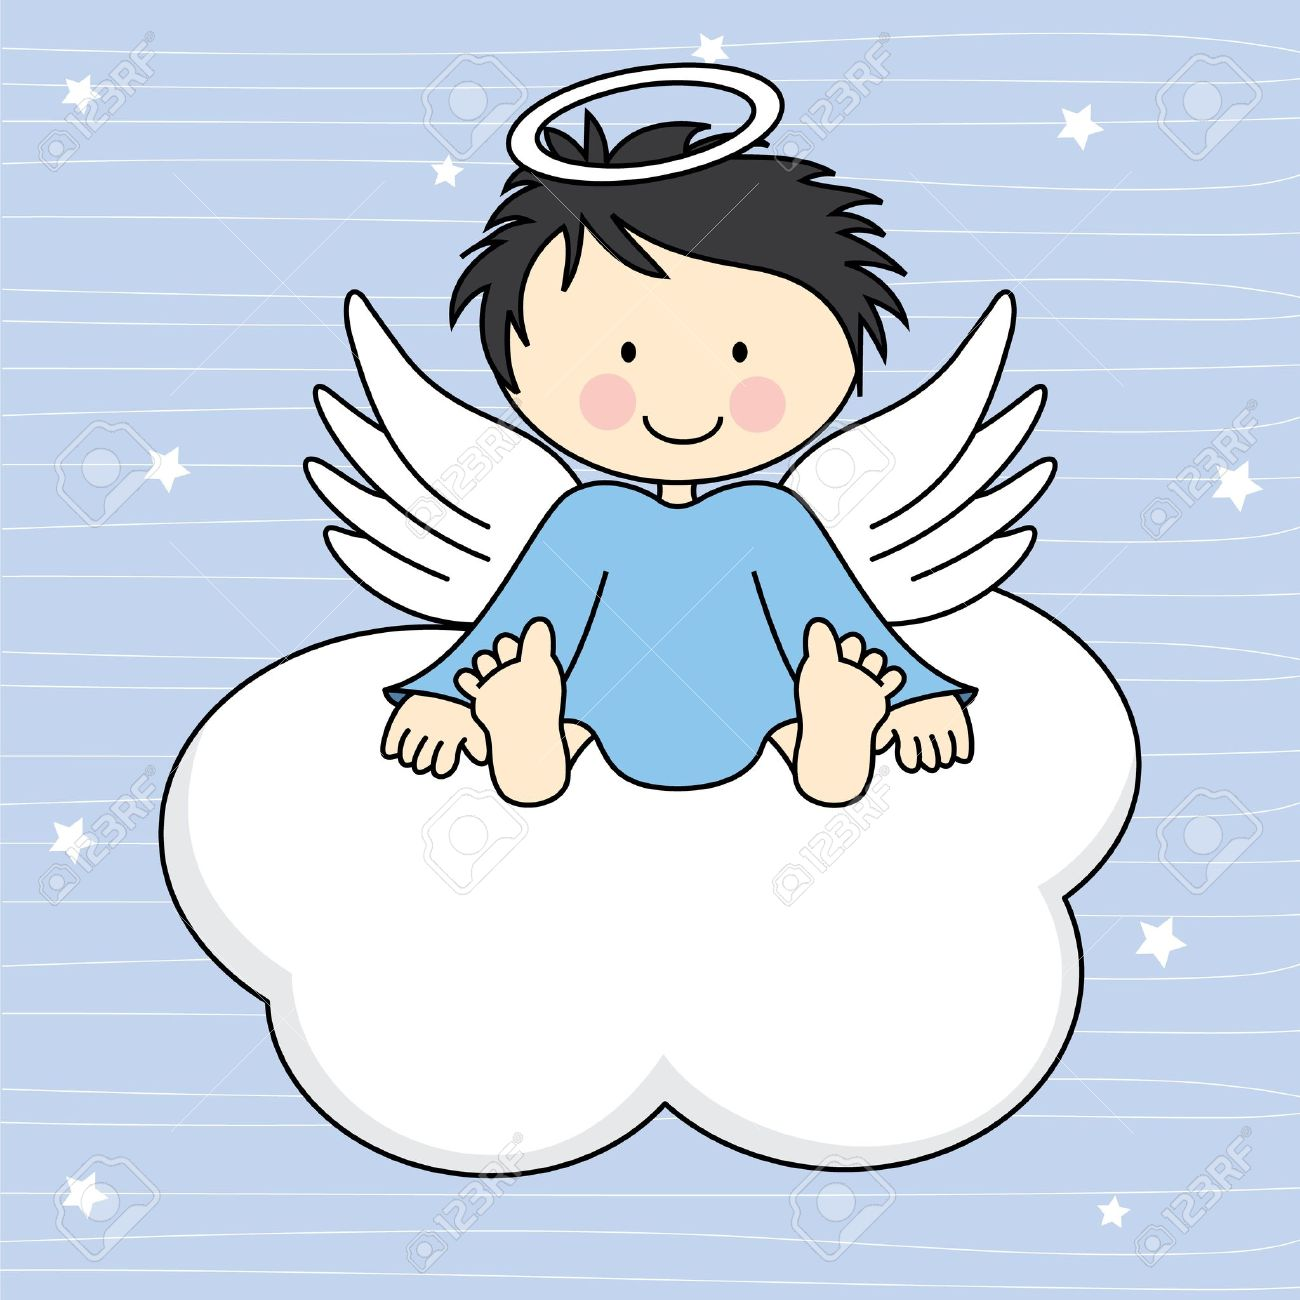 4,608 Baby Angels Stock Vector Illustration And Royalty Free Baby ...